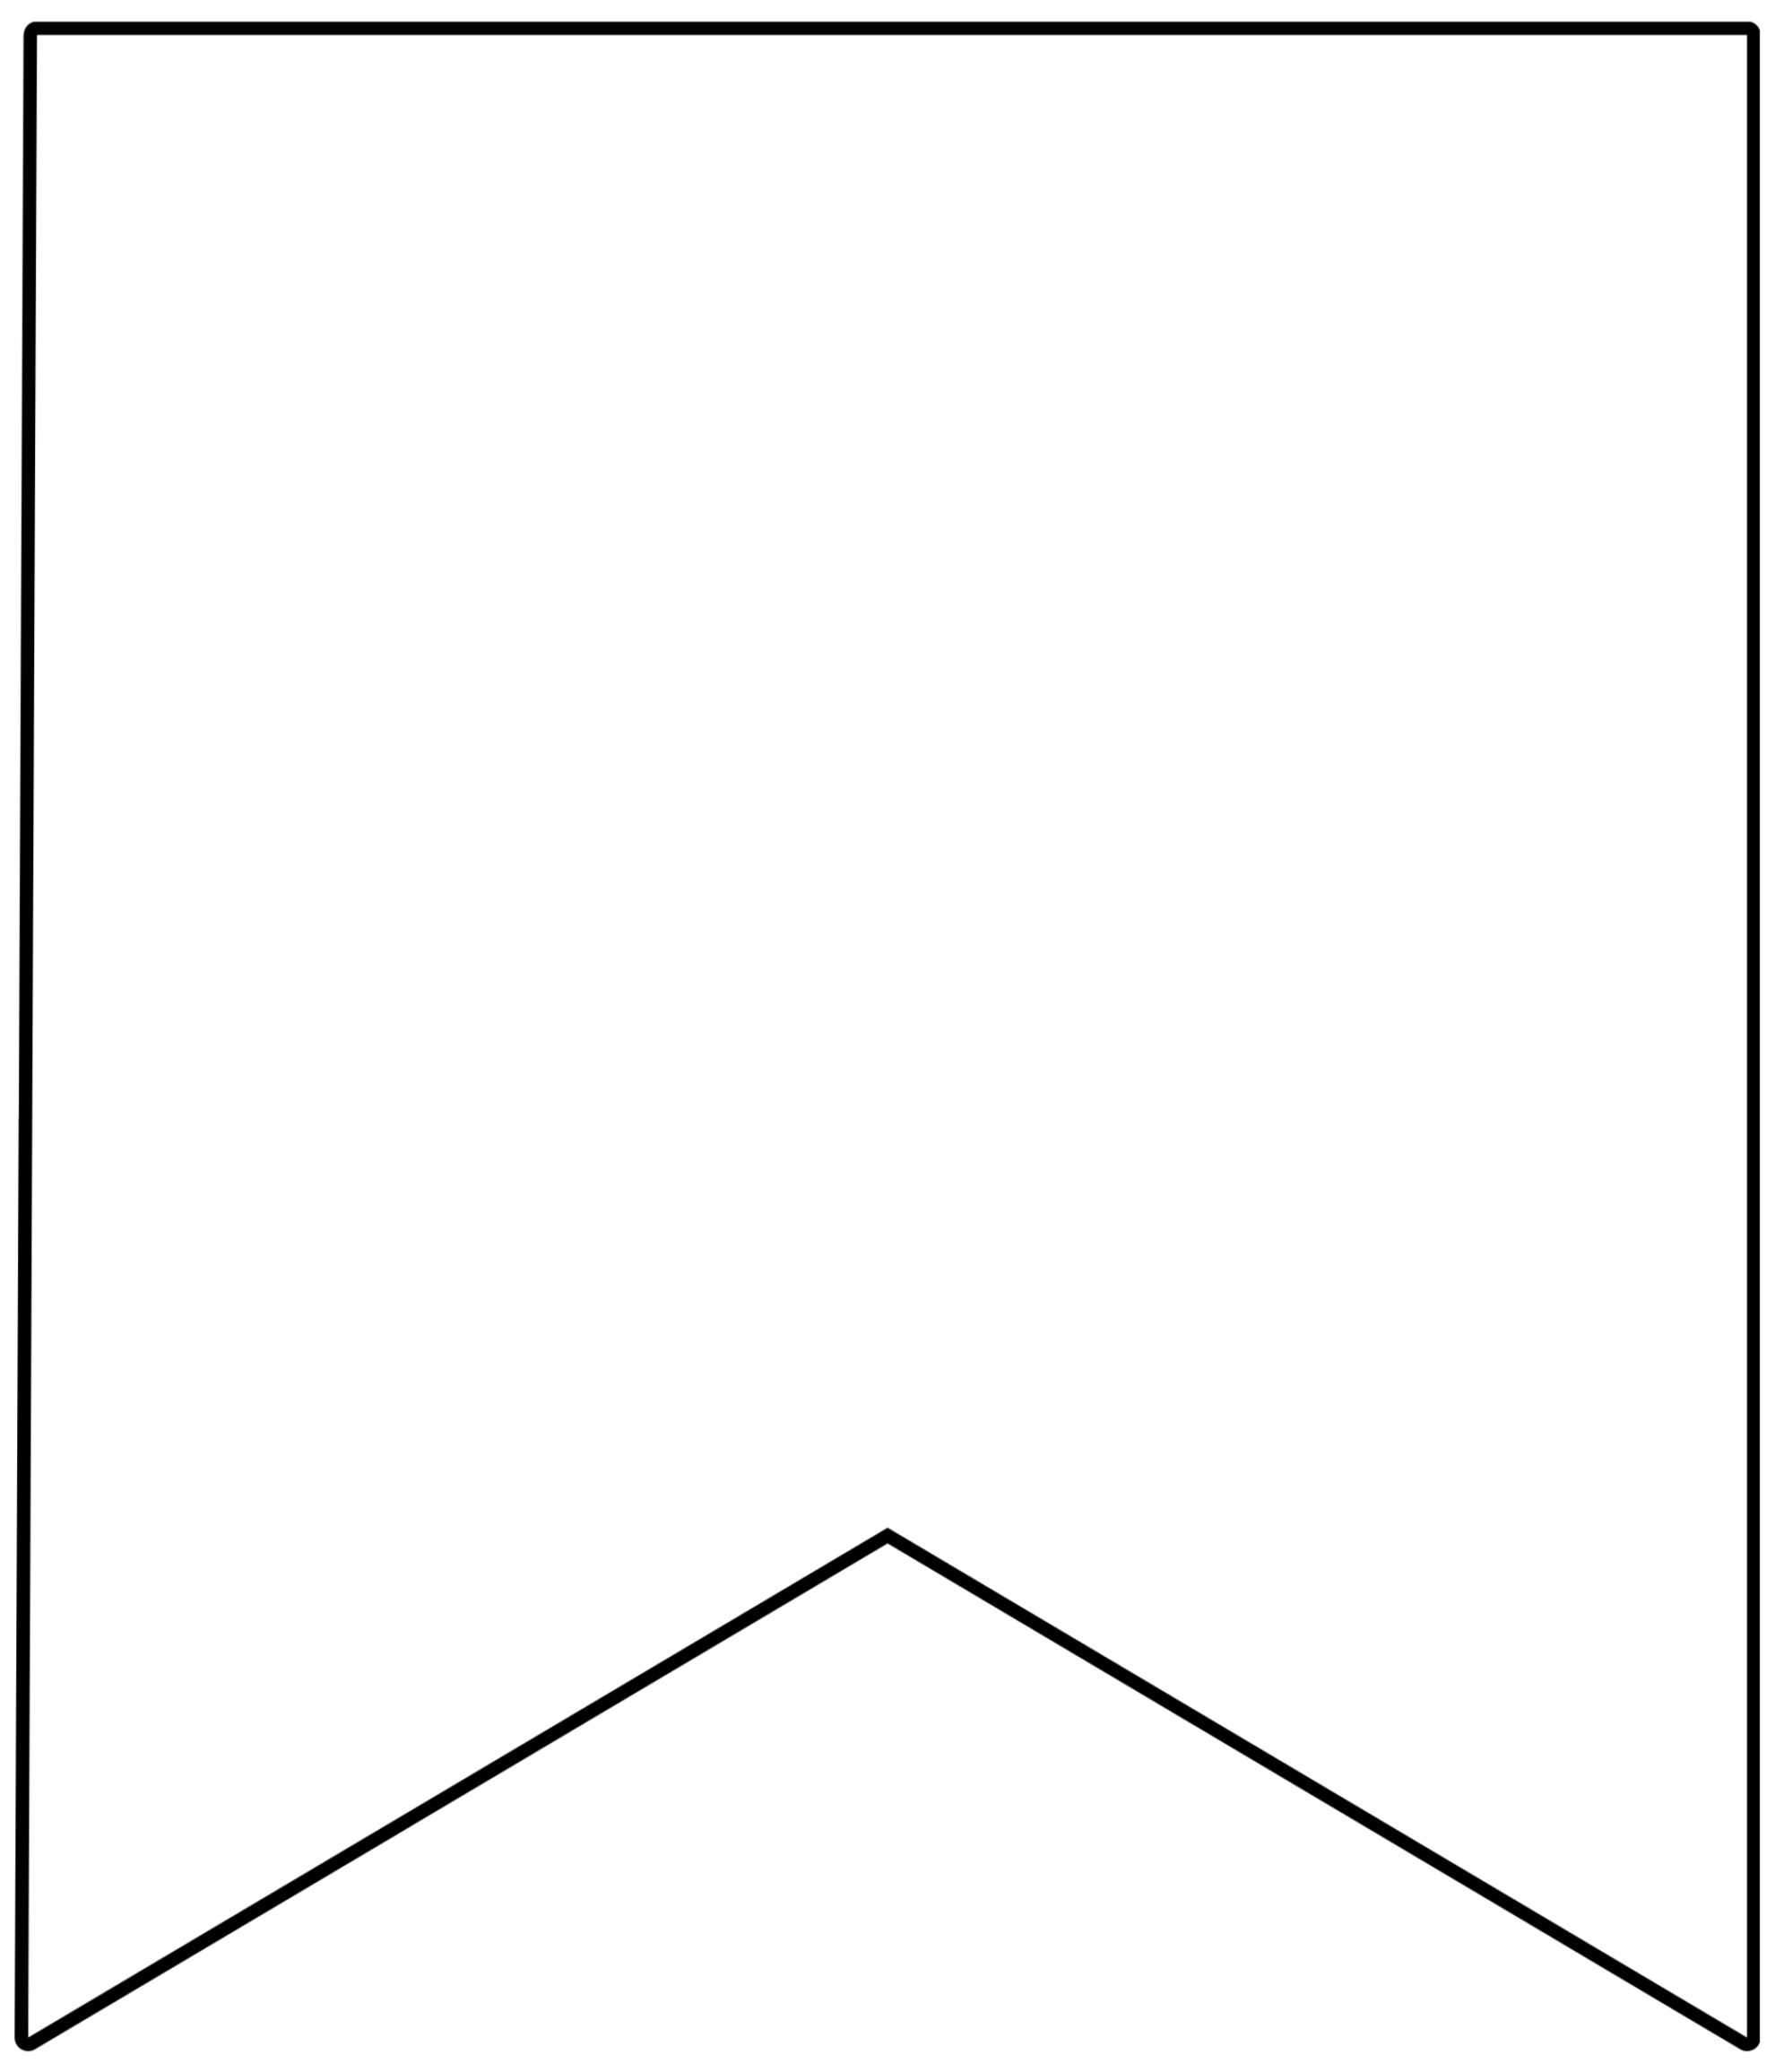 Free Printable Banner Templates {Blank Banners} - Paper Throughout Homemade Banner Template